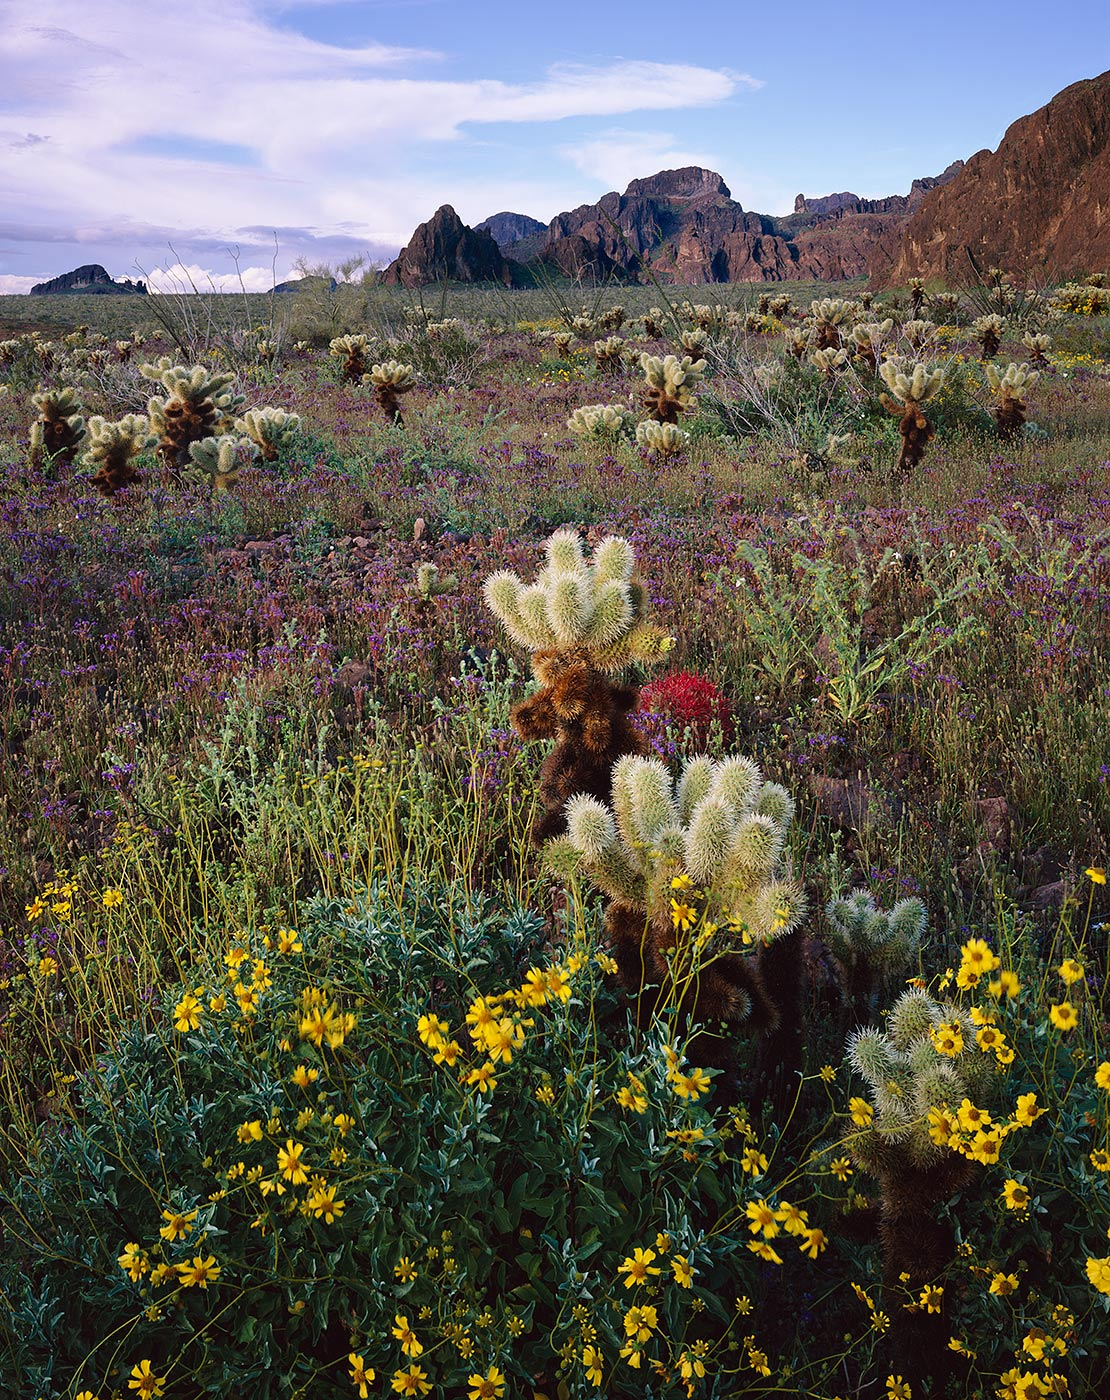 604 Flowers & Chollas, Kofa National Wildlife Refuge, Arizona